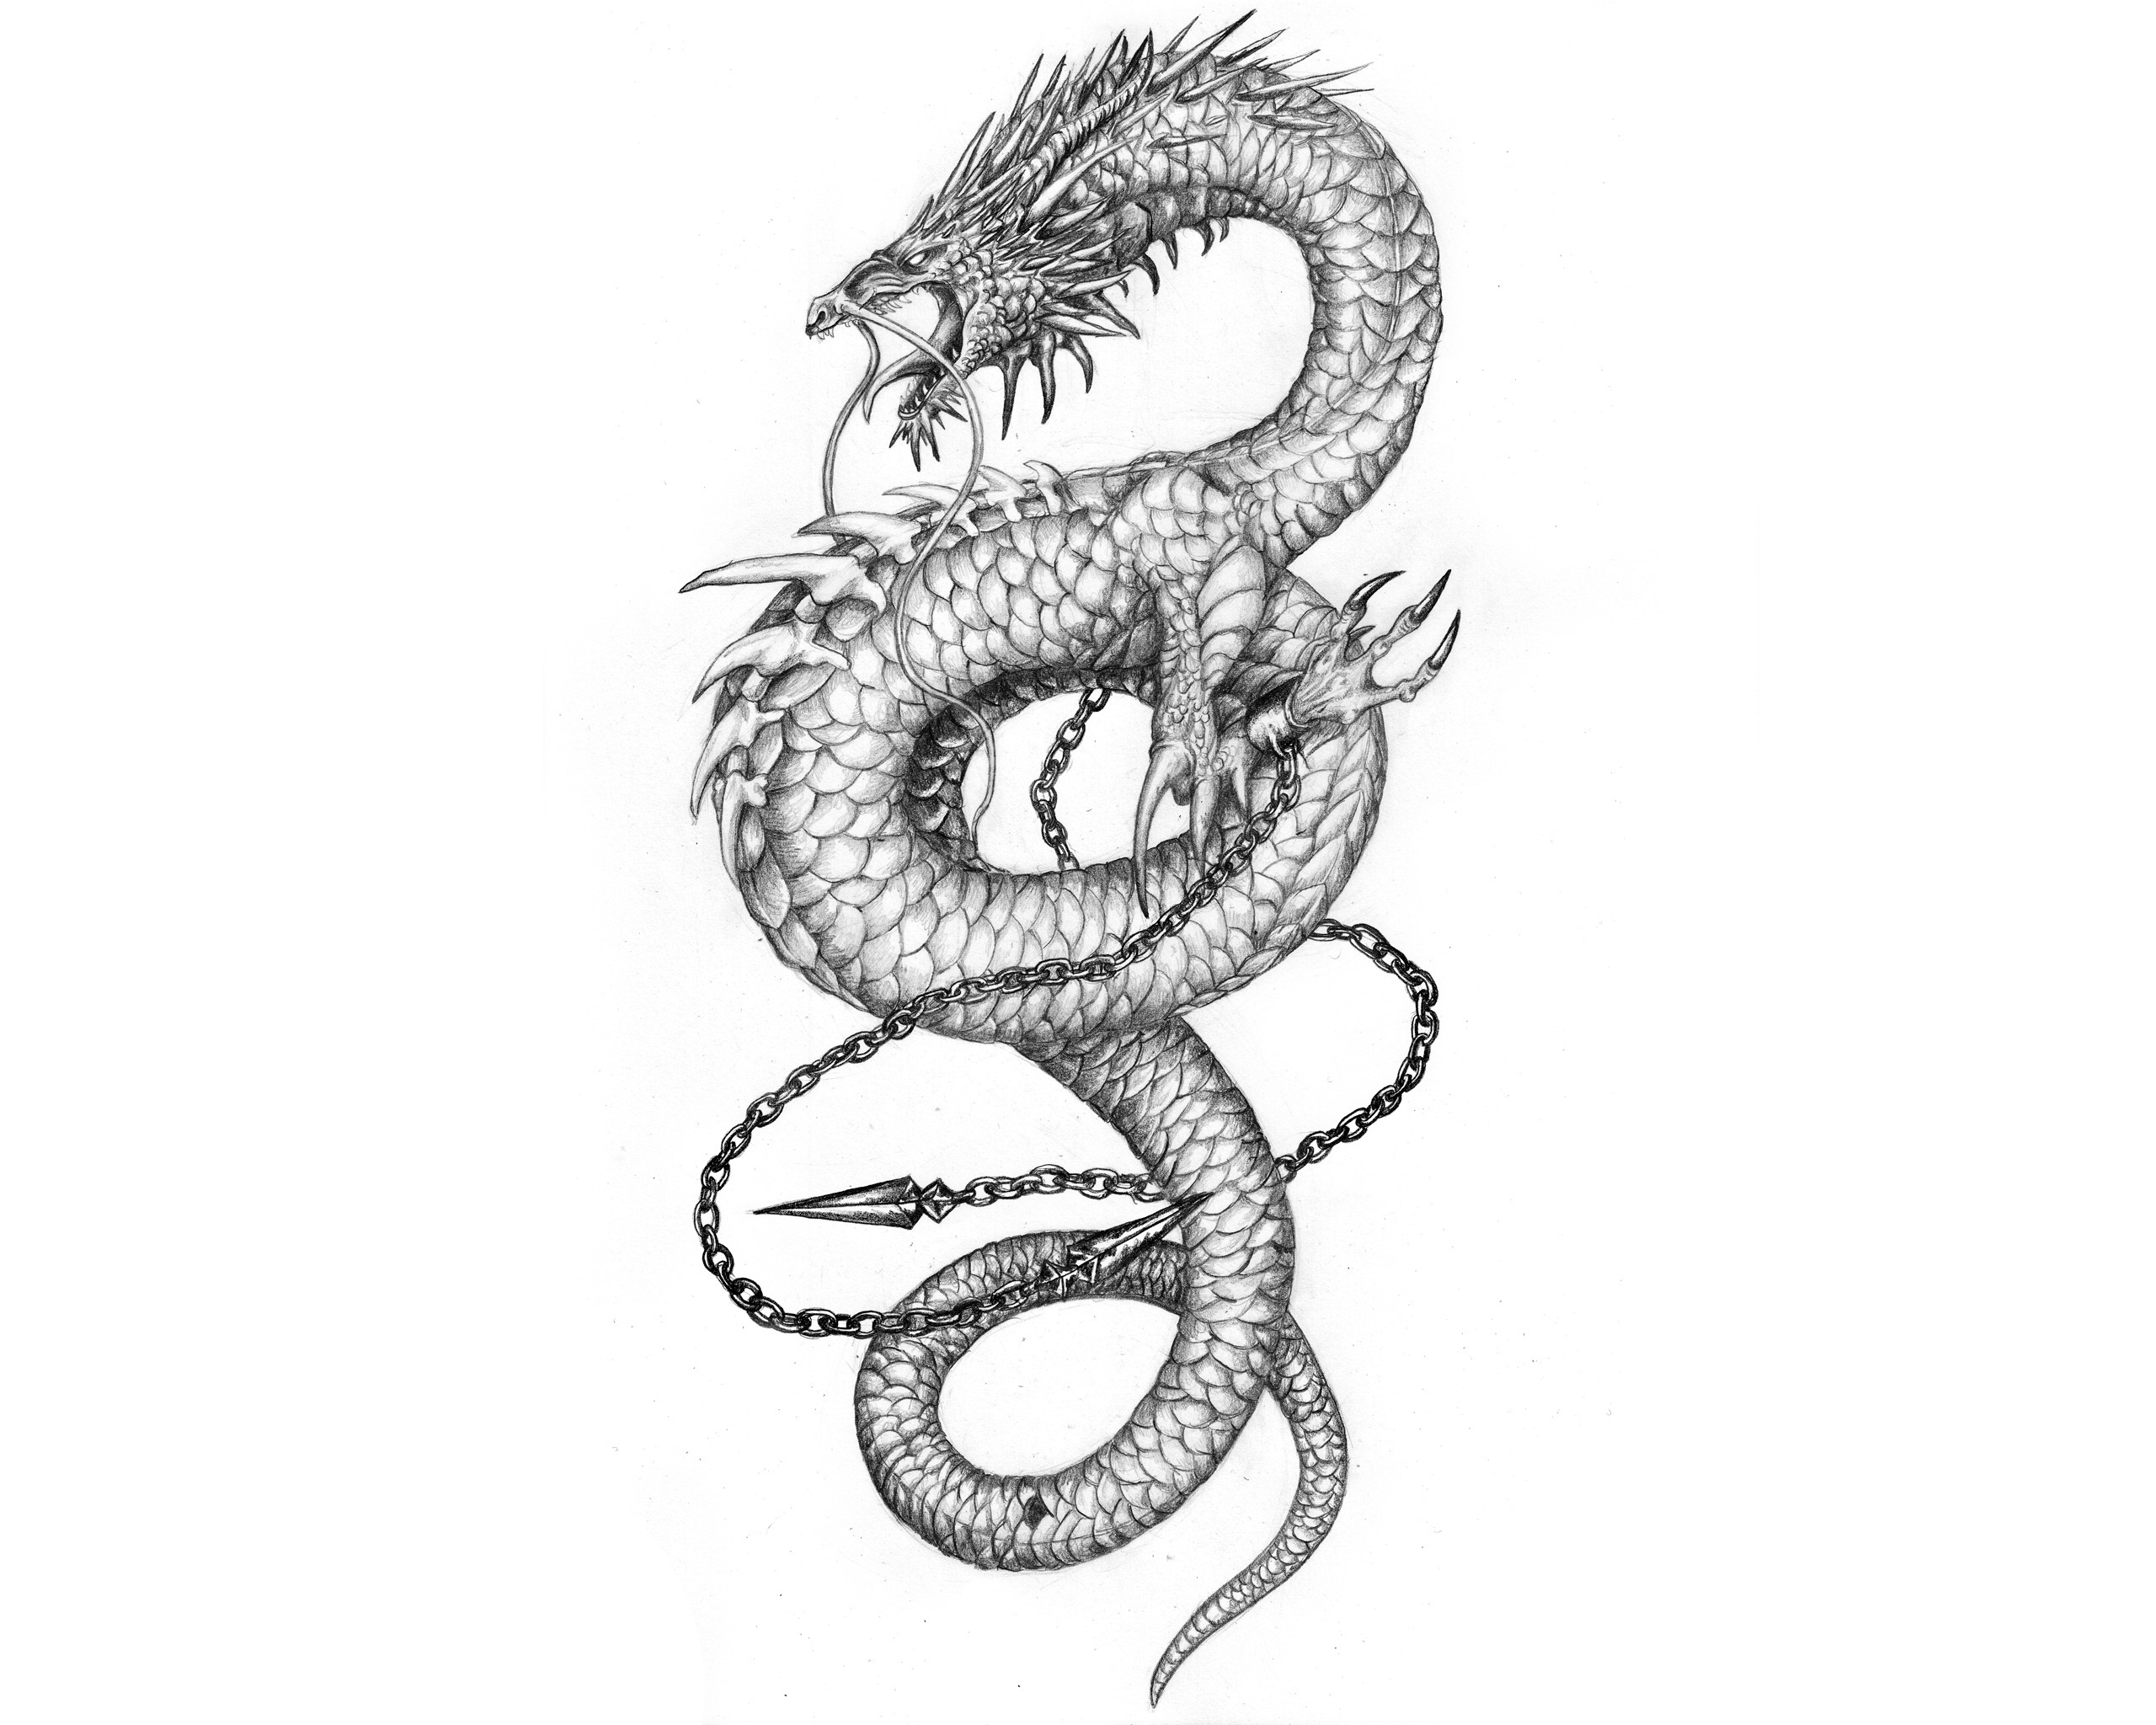 Chinese dragon tattoo on thigh pain